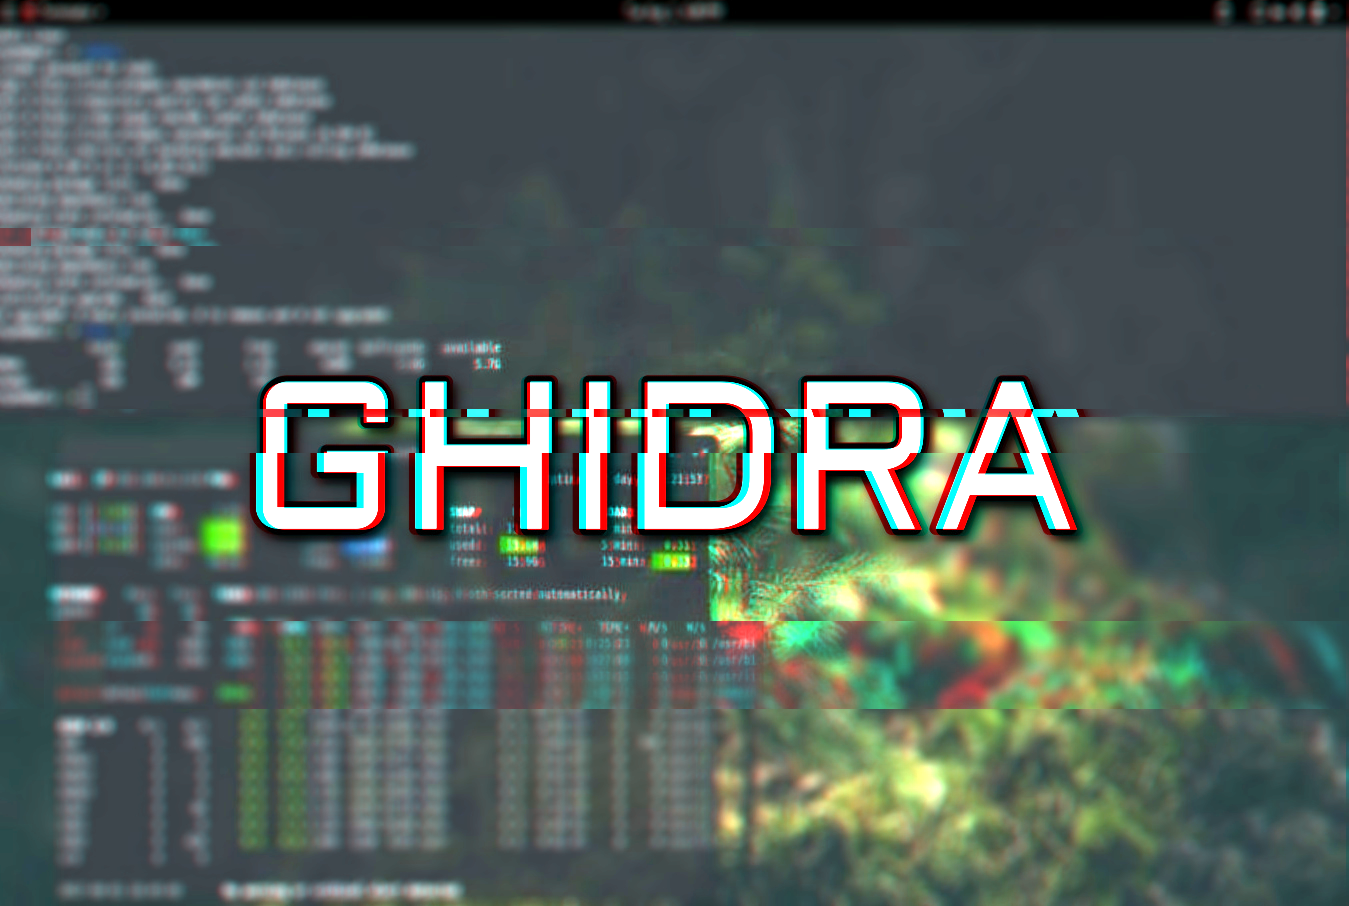 Flaw-in-nsa-ghidra-vulnerable-remote-code-execution-attacks